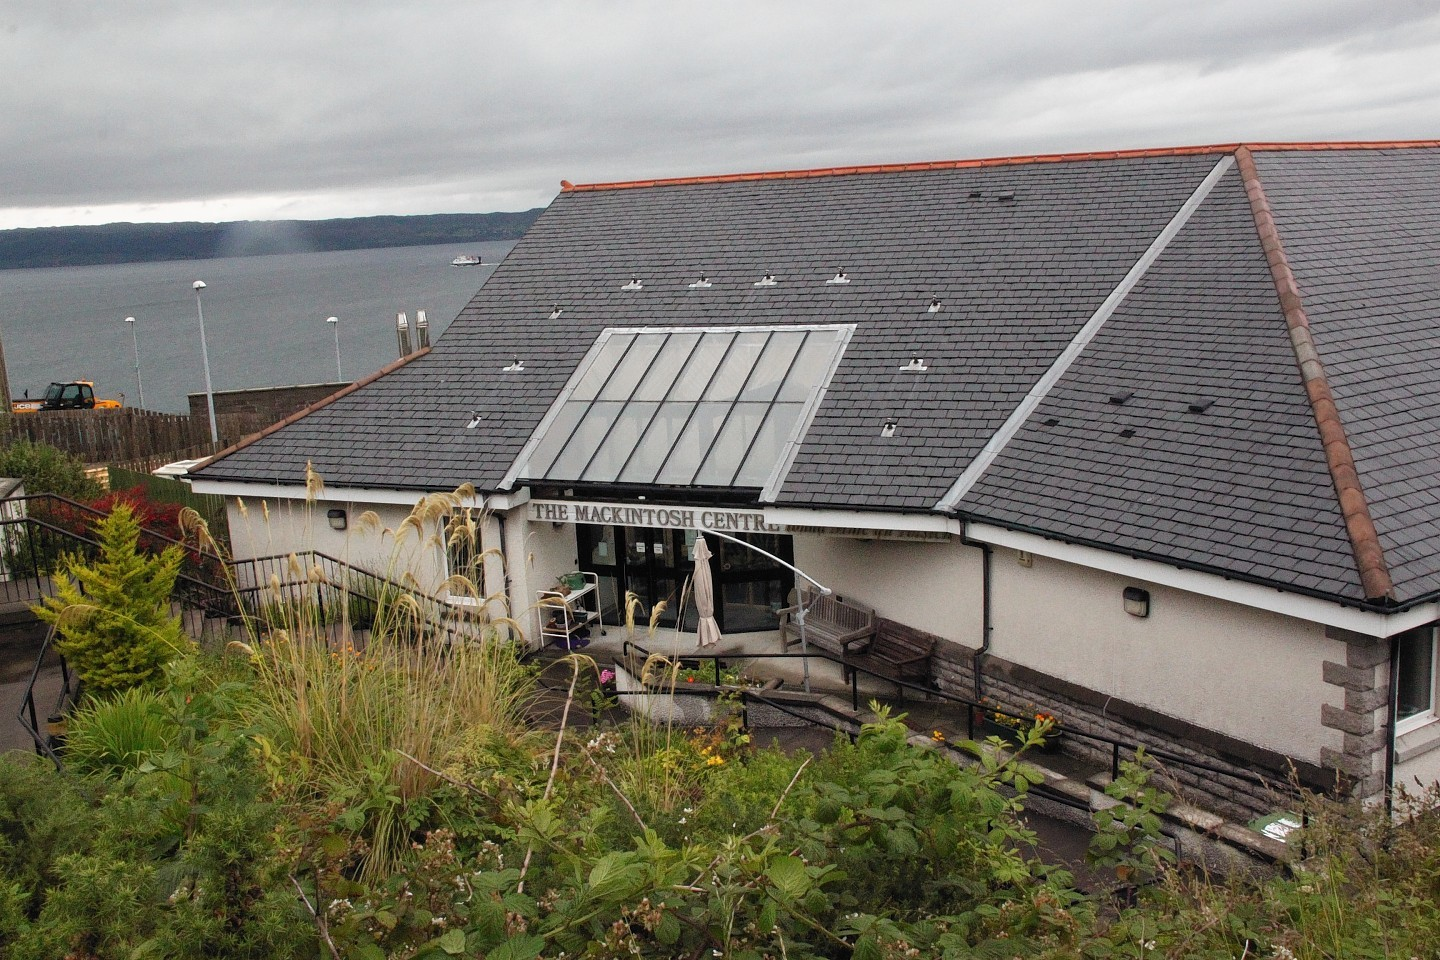 The Mackintosh Centre in Mallaig